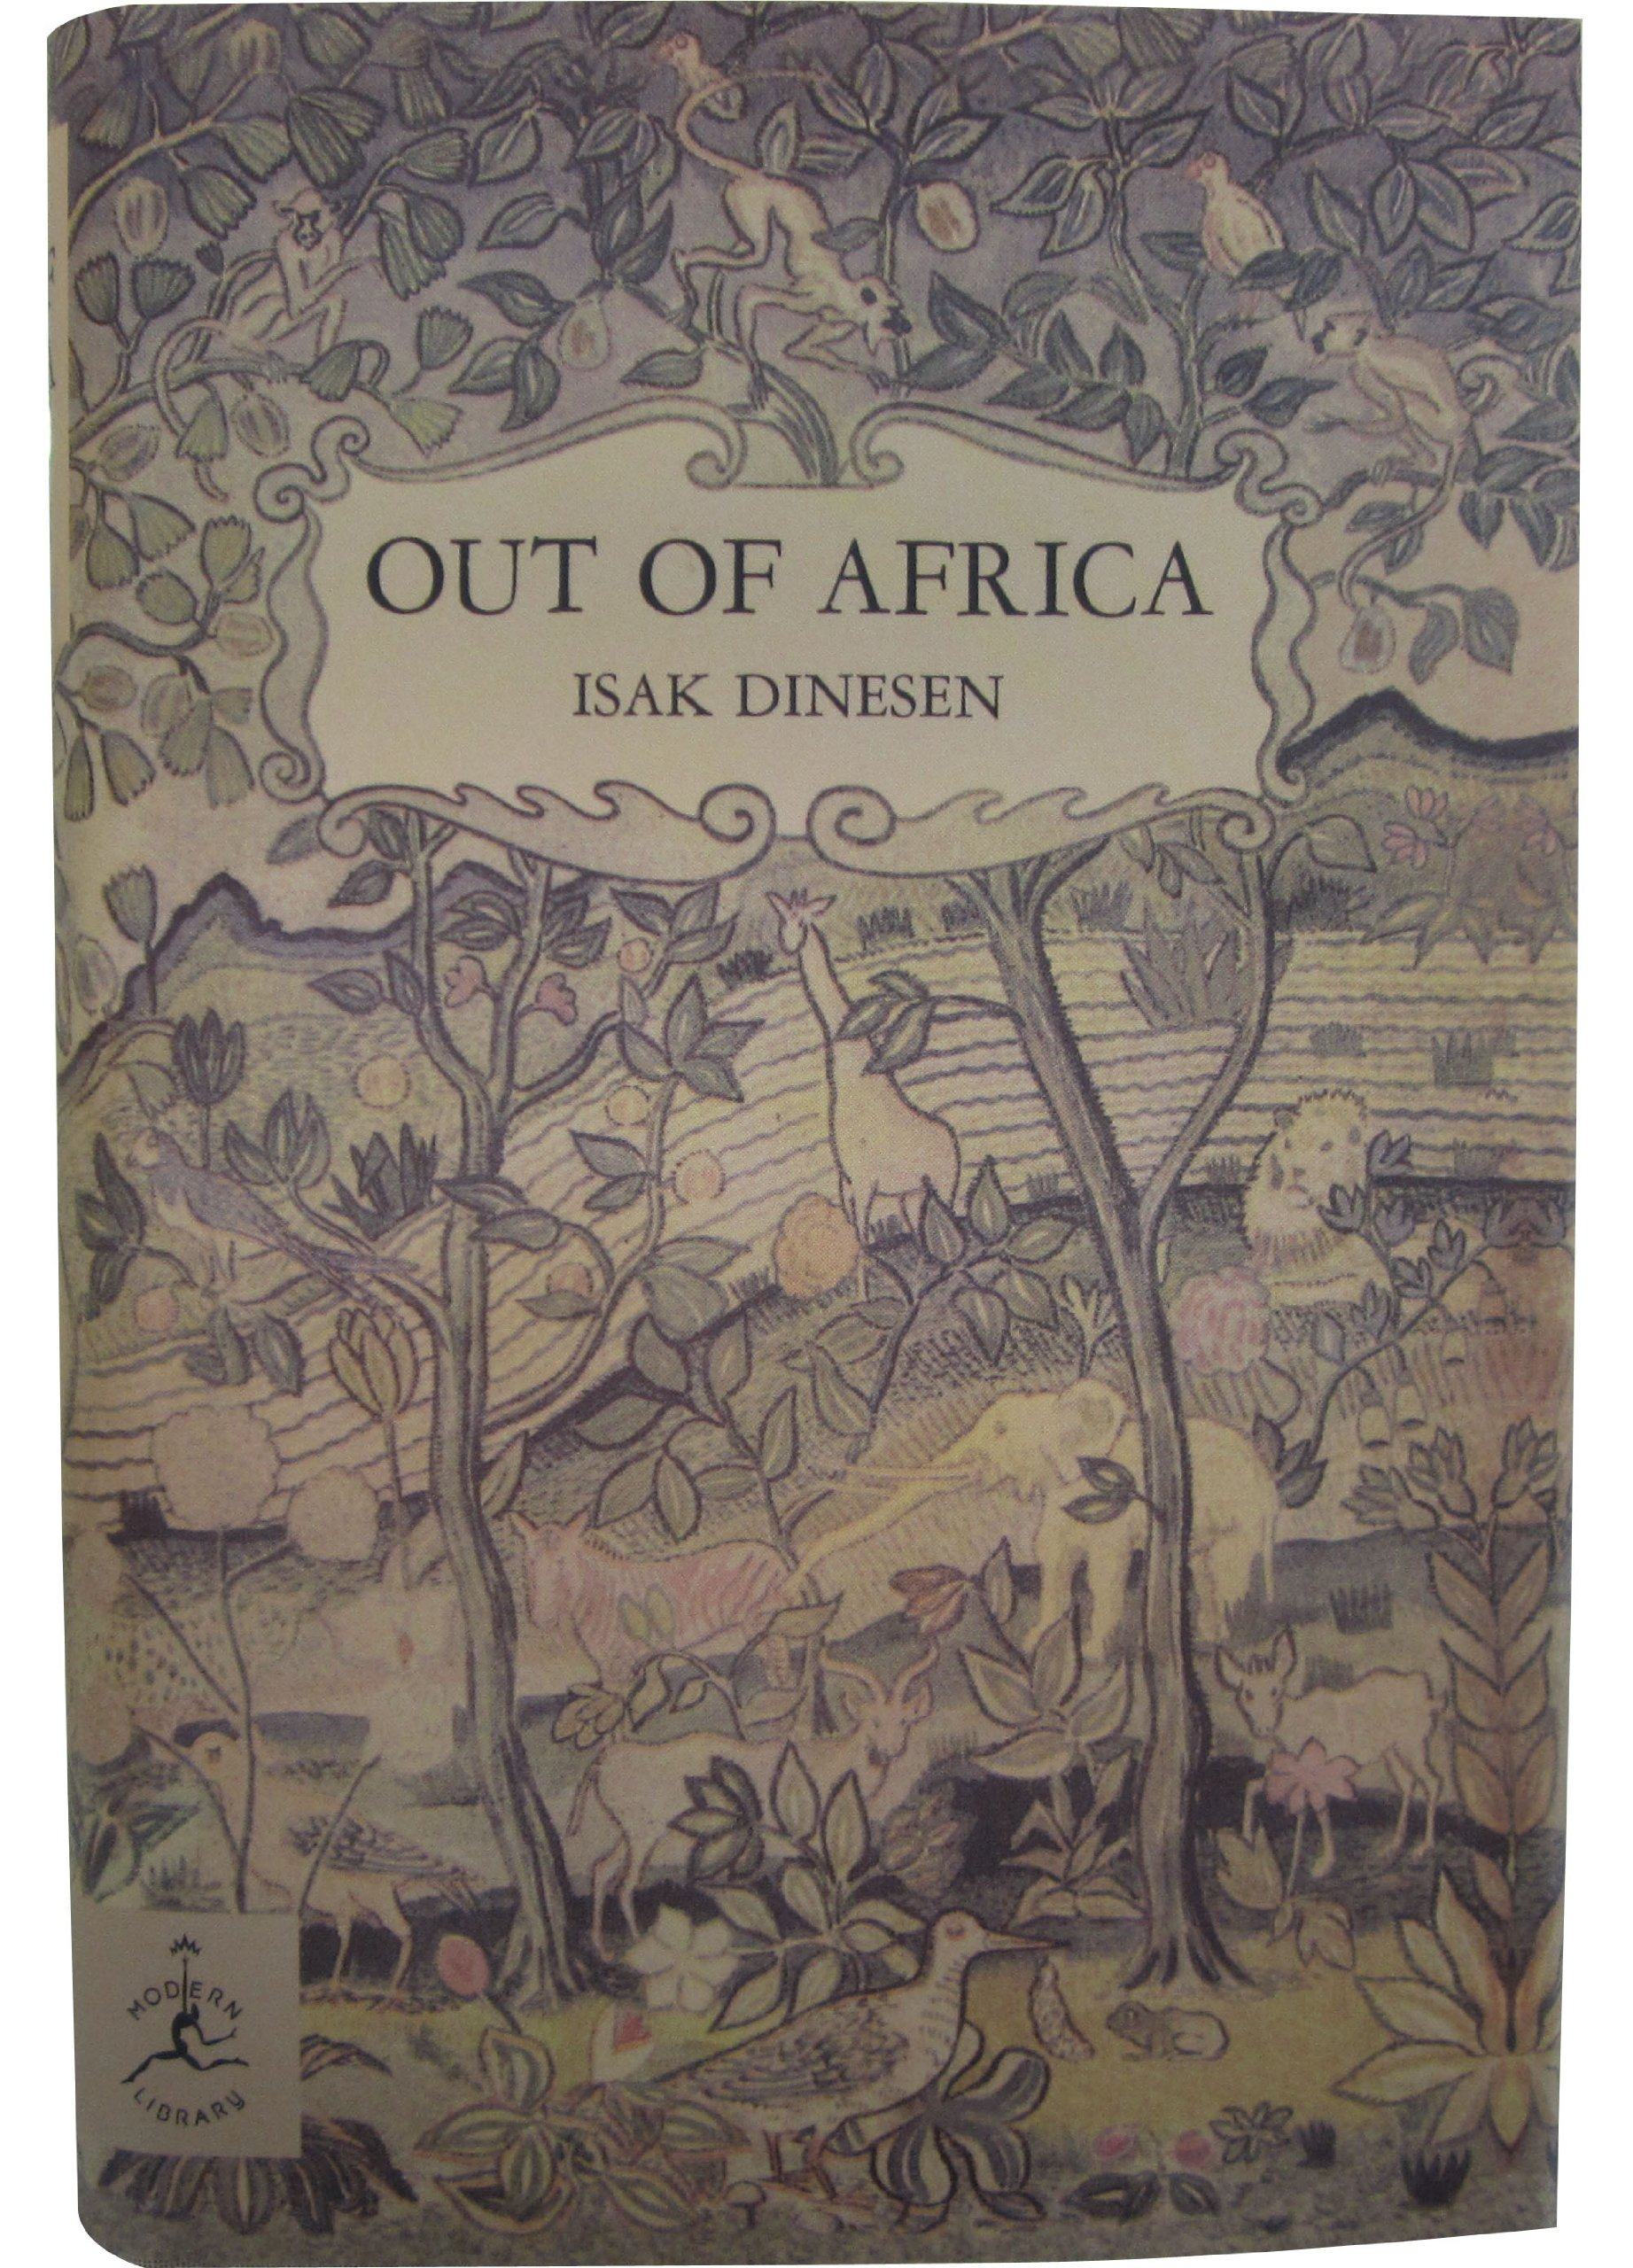 Out Of Africa Modern Library 100 Best Nonfiction Books Dinesen Isak 9780679600213 Amazon Com Books